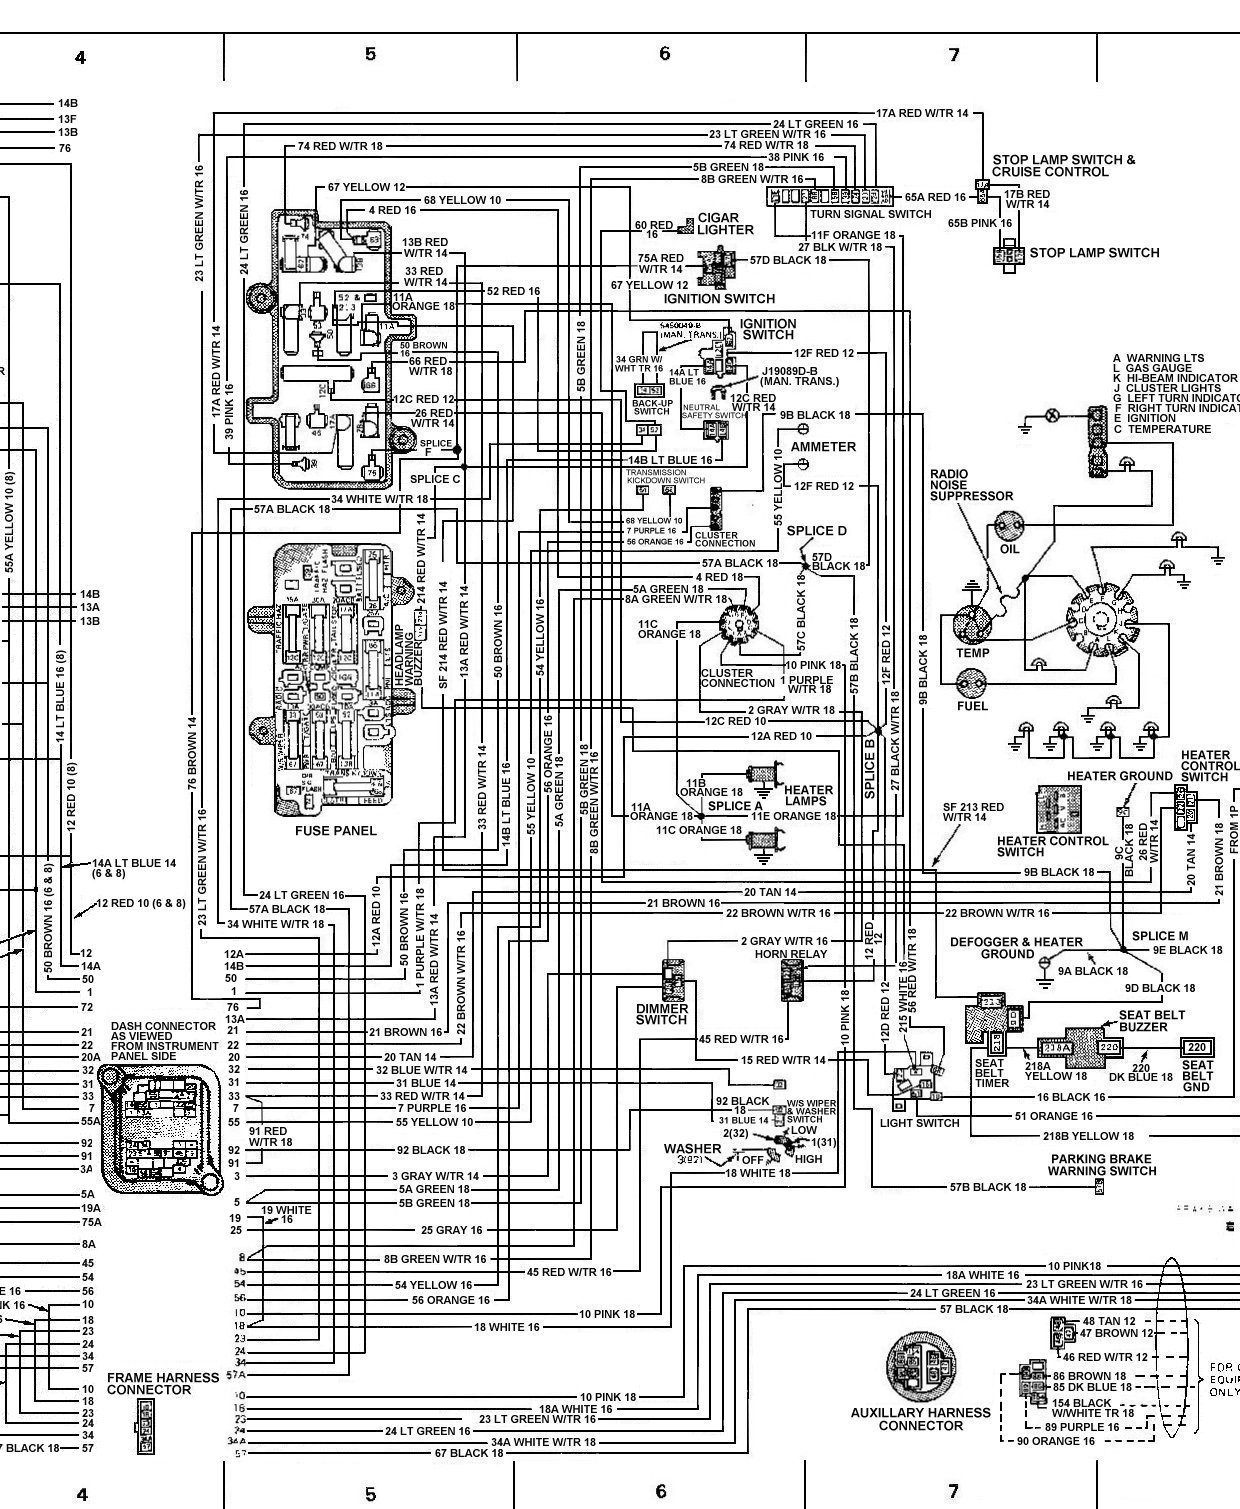 wire diagram wire image wiring diagram 2012 chrysler 200 wiring diagram 2012 wiring diagrams on wire diagram